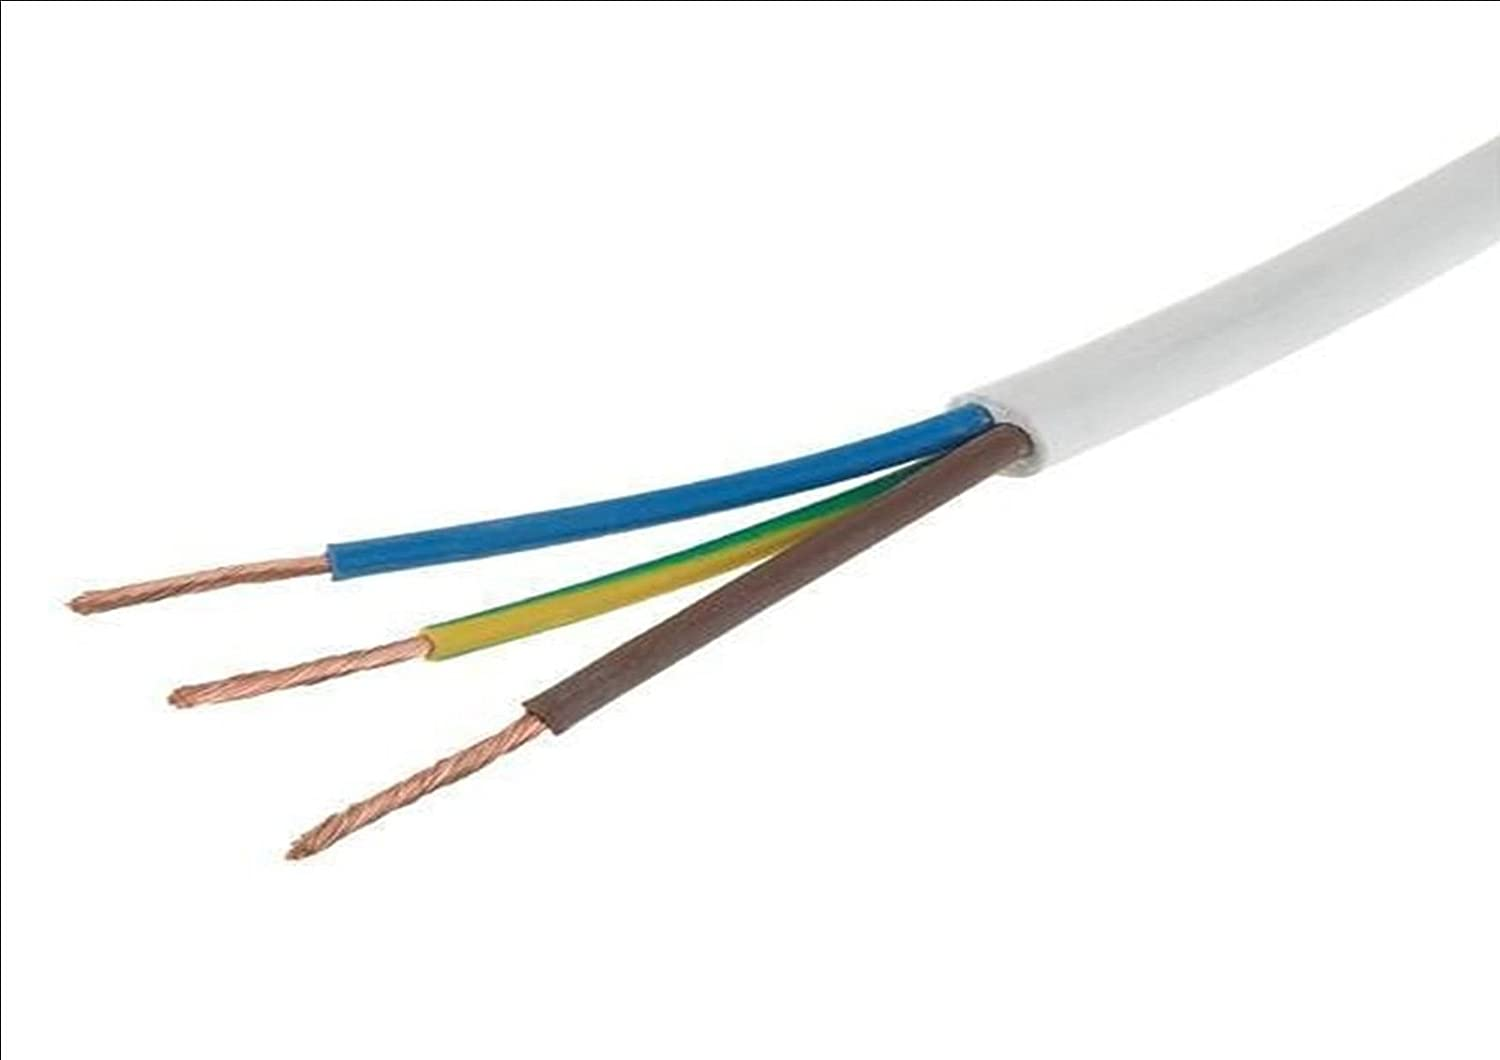 White Round Flexible Flex Cable 2 3 4 Core 0.75mm 1mm 1.5mm 2.5mm Electric